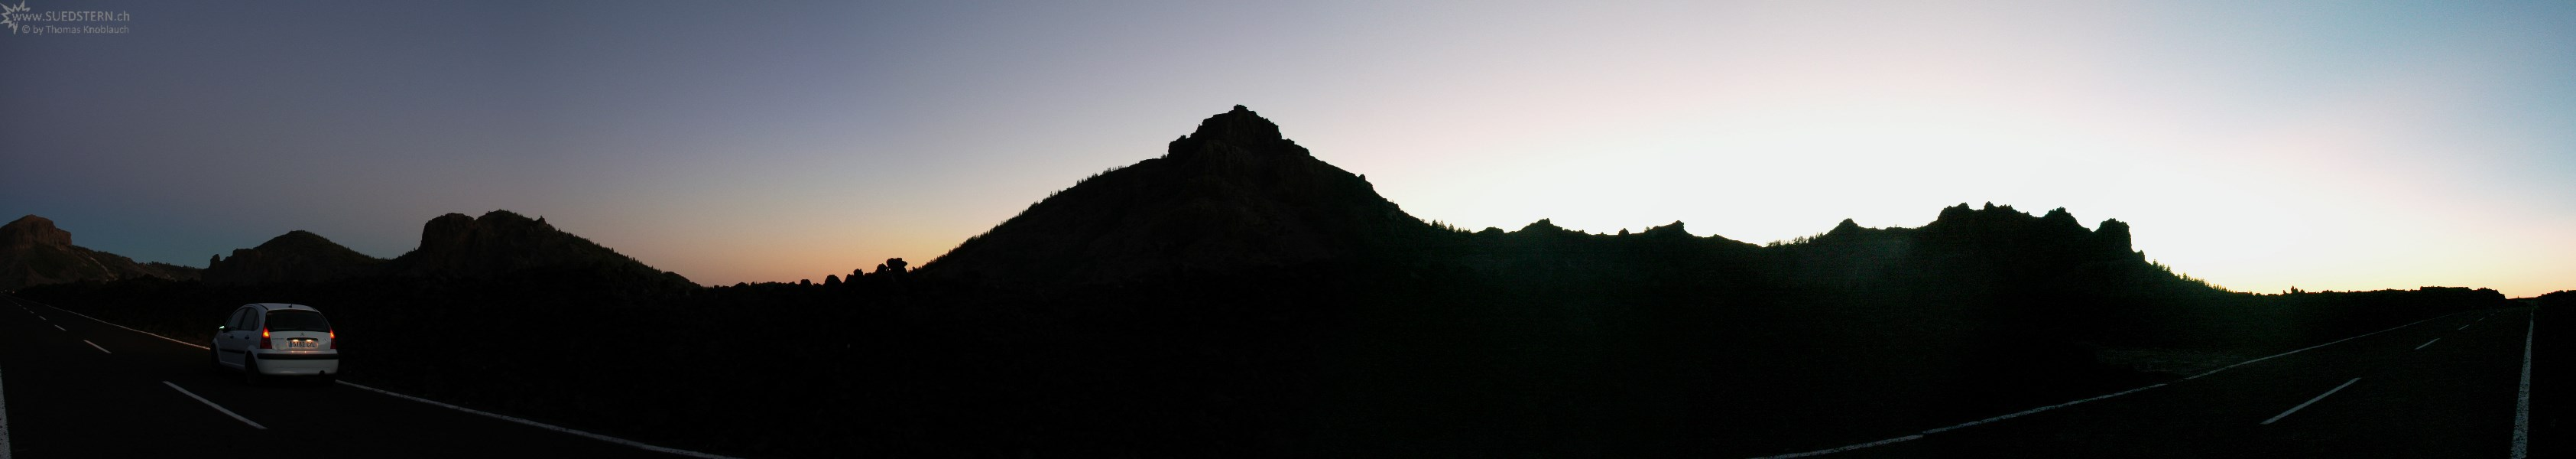 2007-09-05 - 12 - Teneriffa, sundown at Teide Caldera